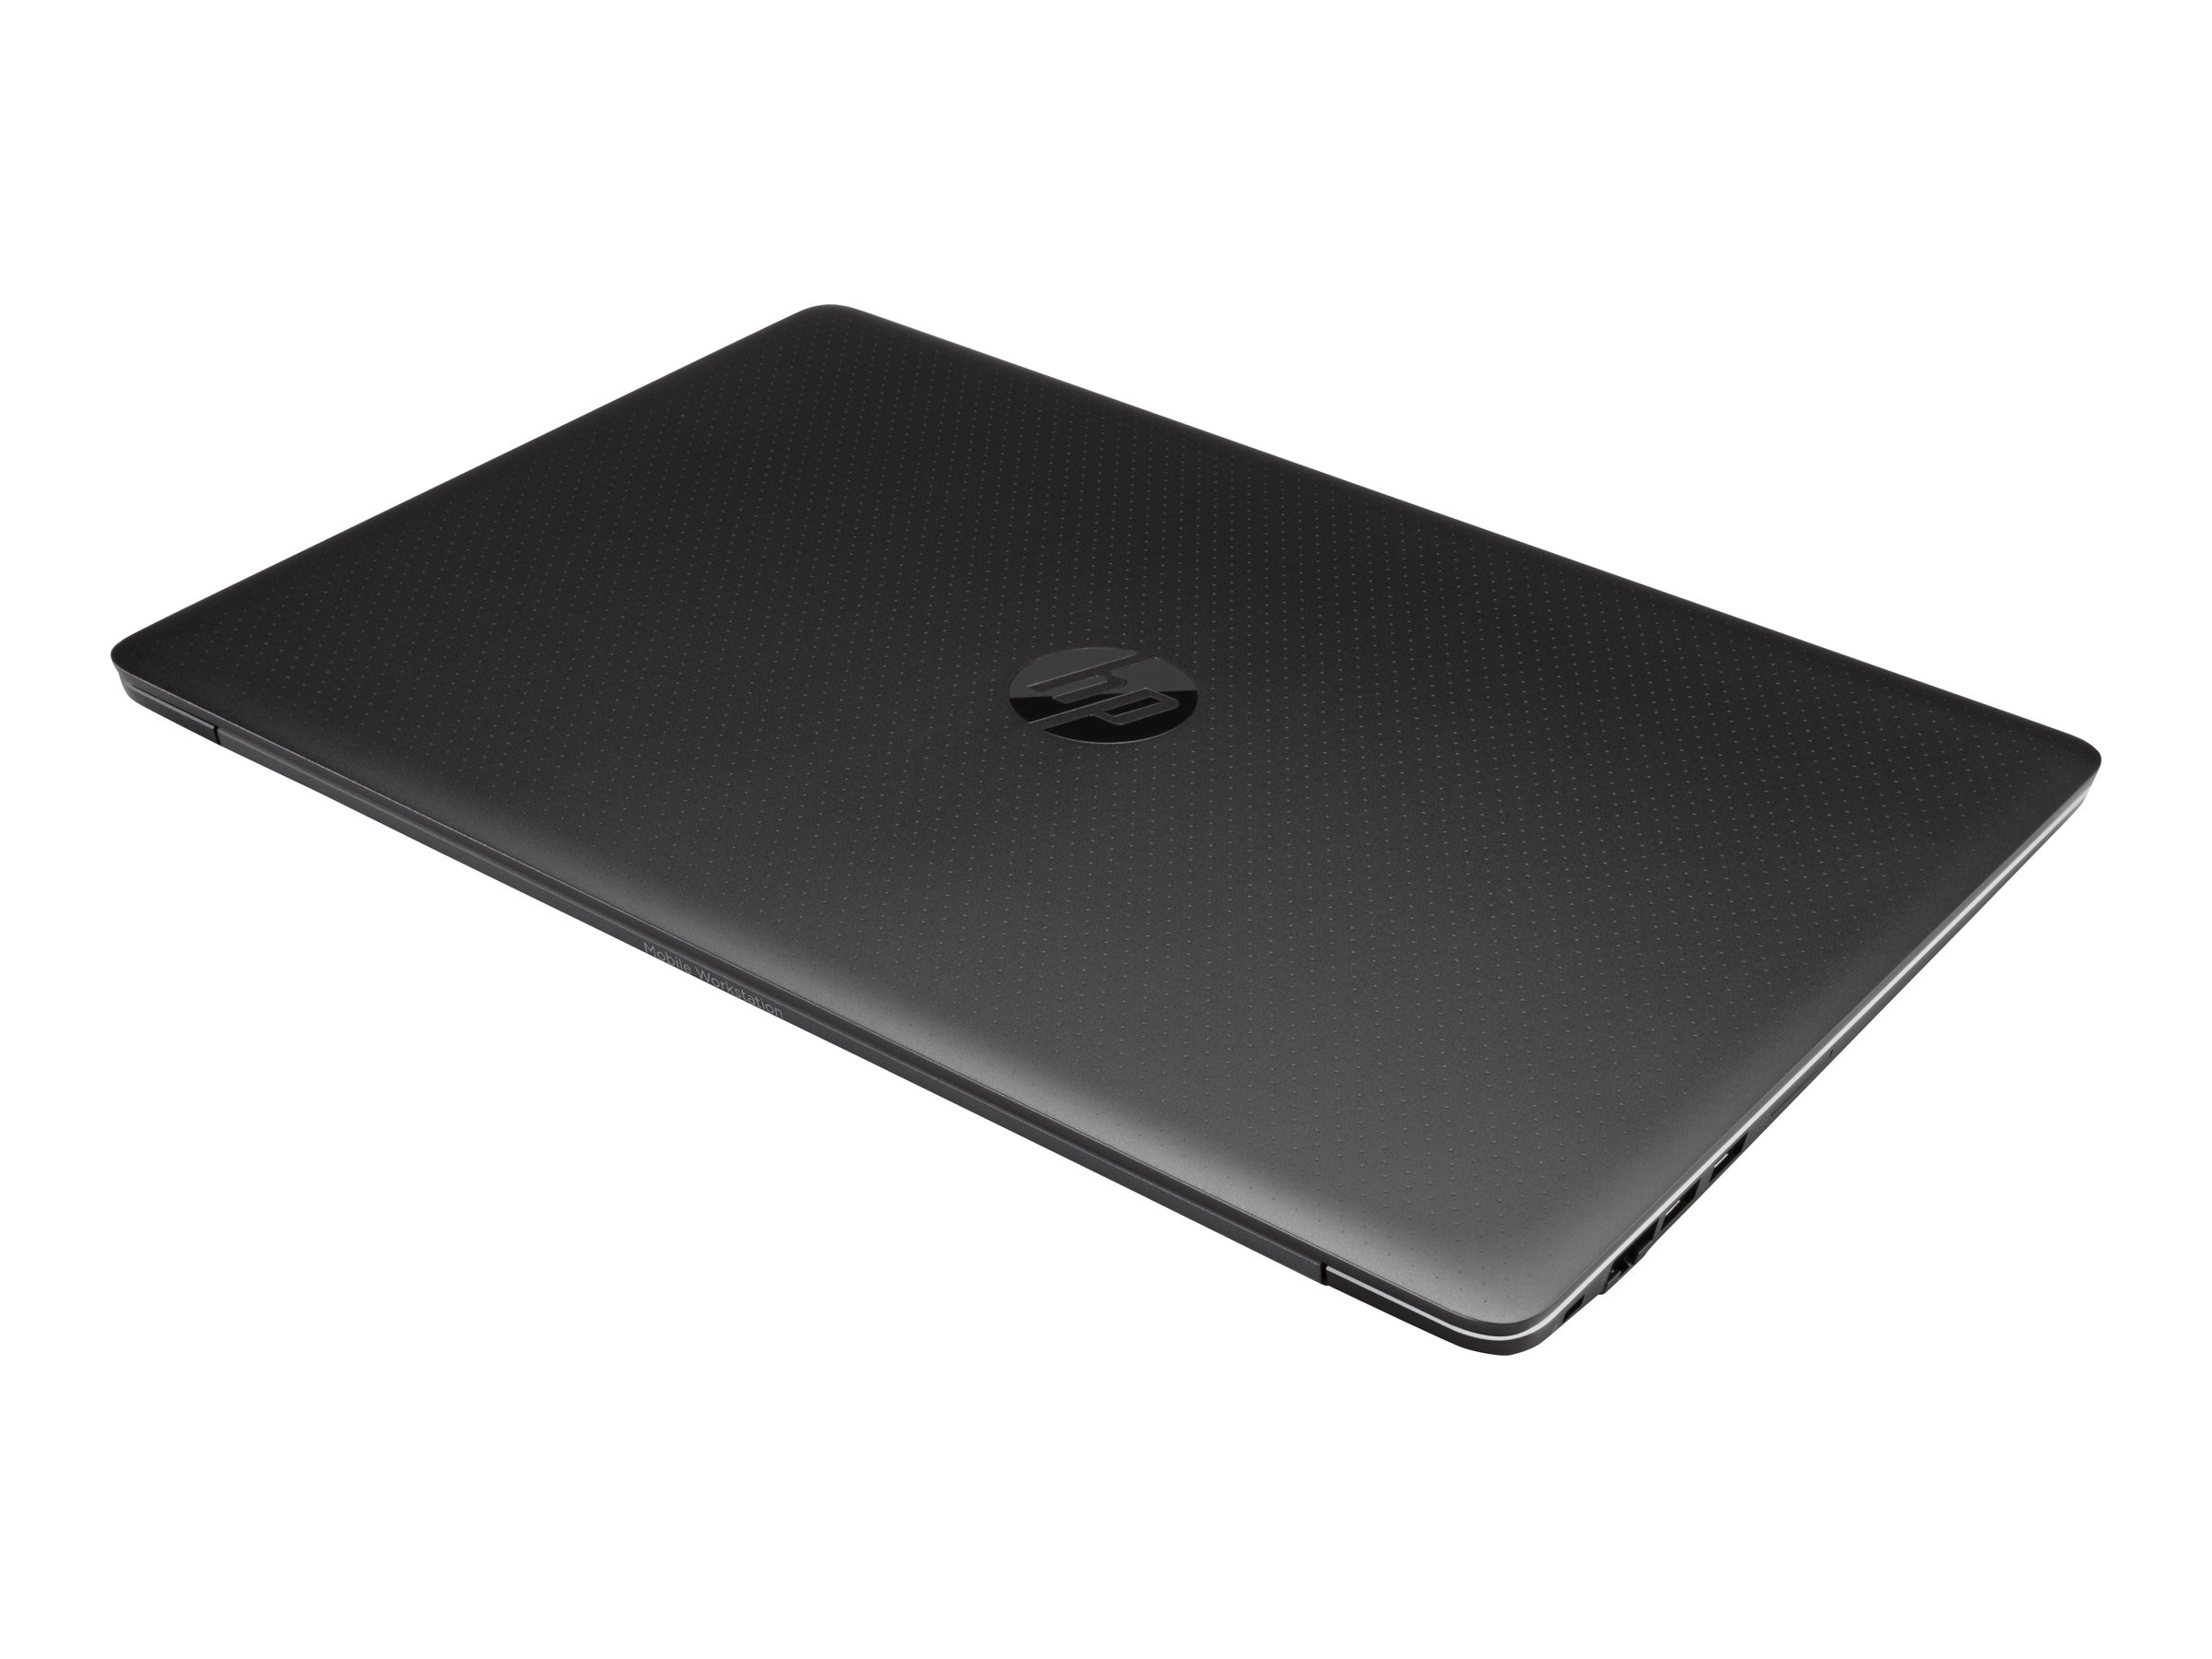 HP ZBook Studio G3 Core i7-6700HQ 2.6GHz 8GB 128GB SSD ac BT FR WC 4C 15.6 FHD W7P64-W10P64, T6E10UT#ABA